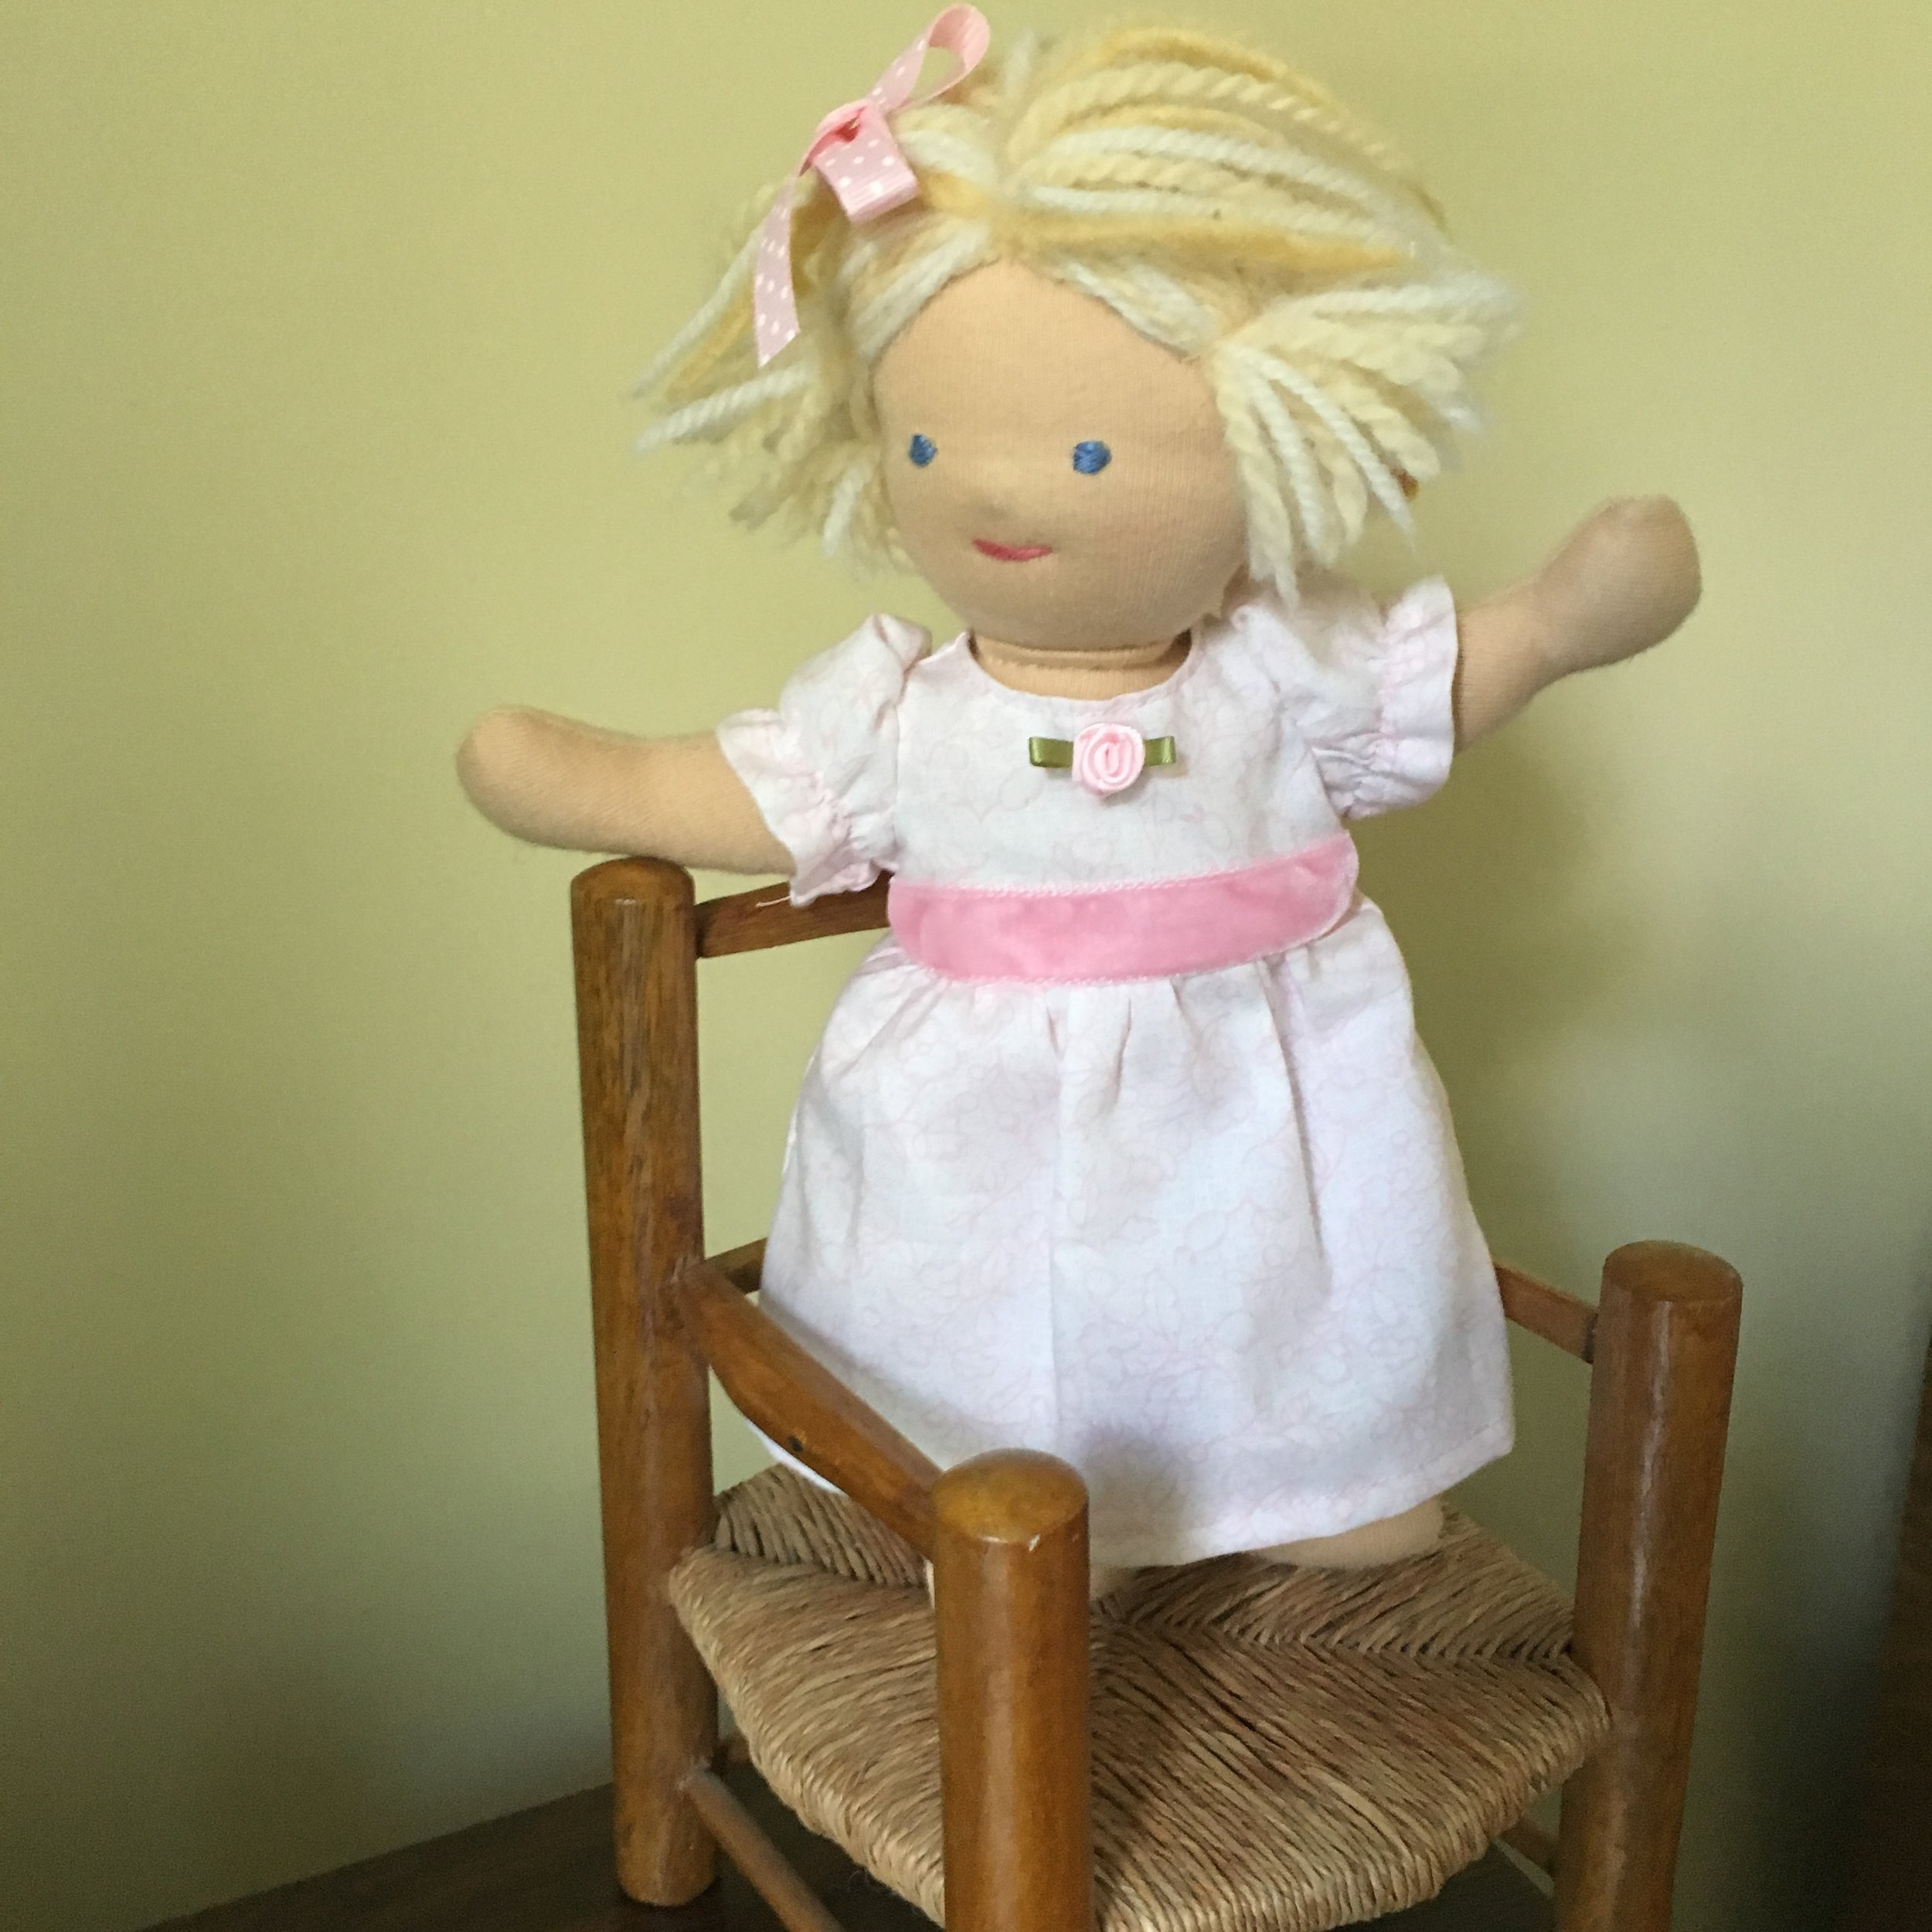 Doll  of the Flower Girl's Outfit (without the shoes because she standing on a chair)!